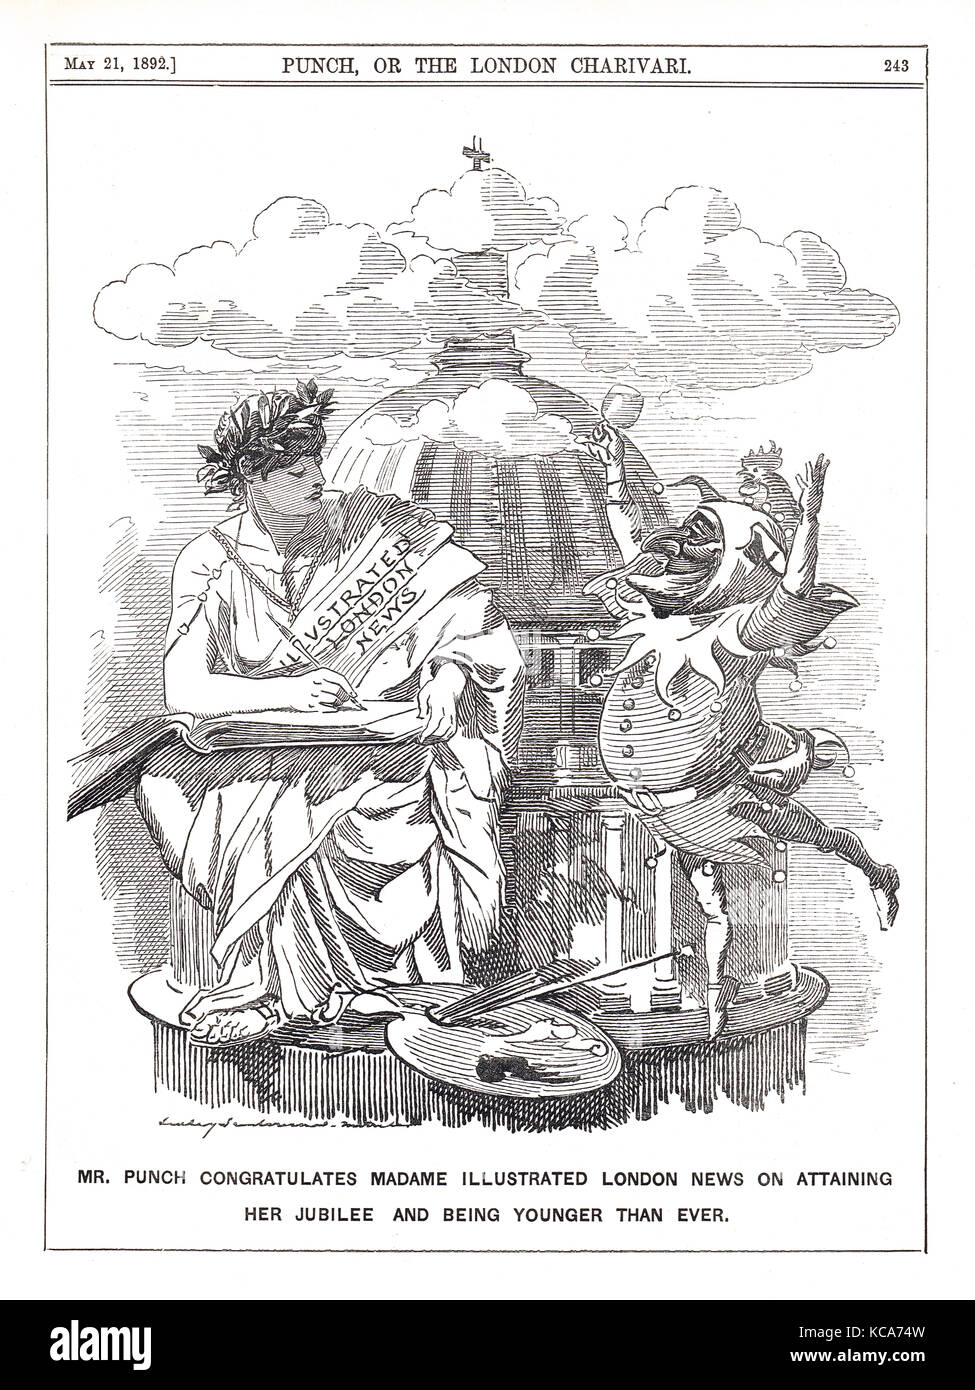 Illustrated London News Jubilee 1842-92. Mr Punch congratulating Madame Illustrated London News on 50 years in print - Stock Image